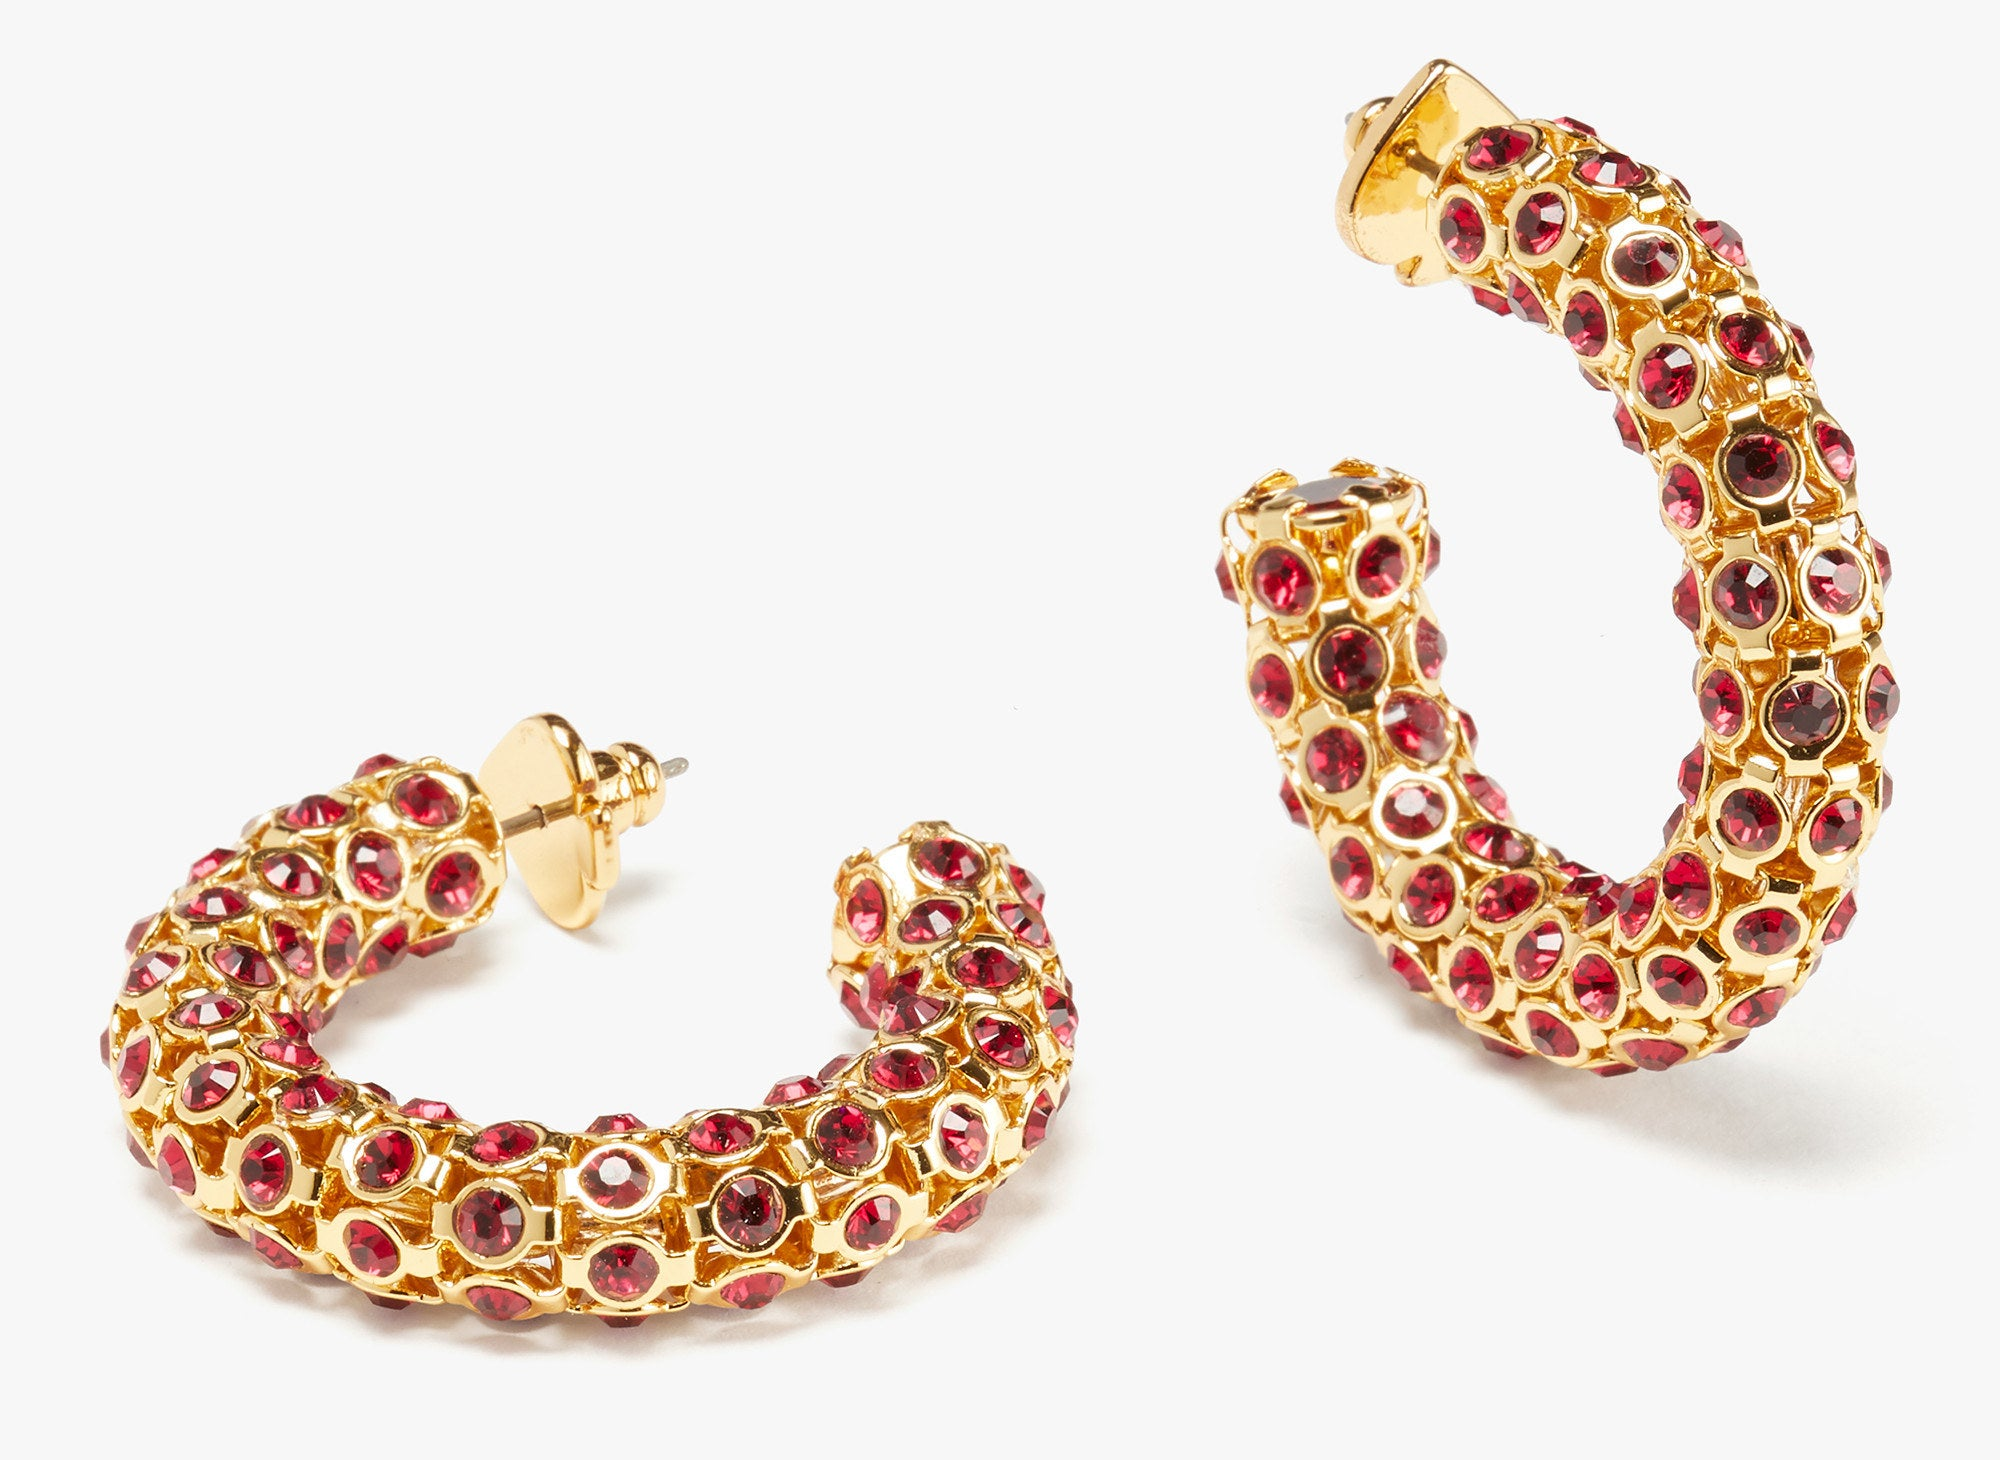 the earrings in gold with red ruby stones